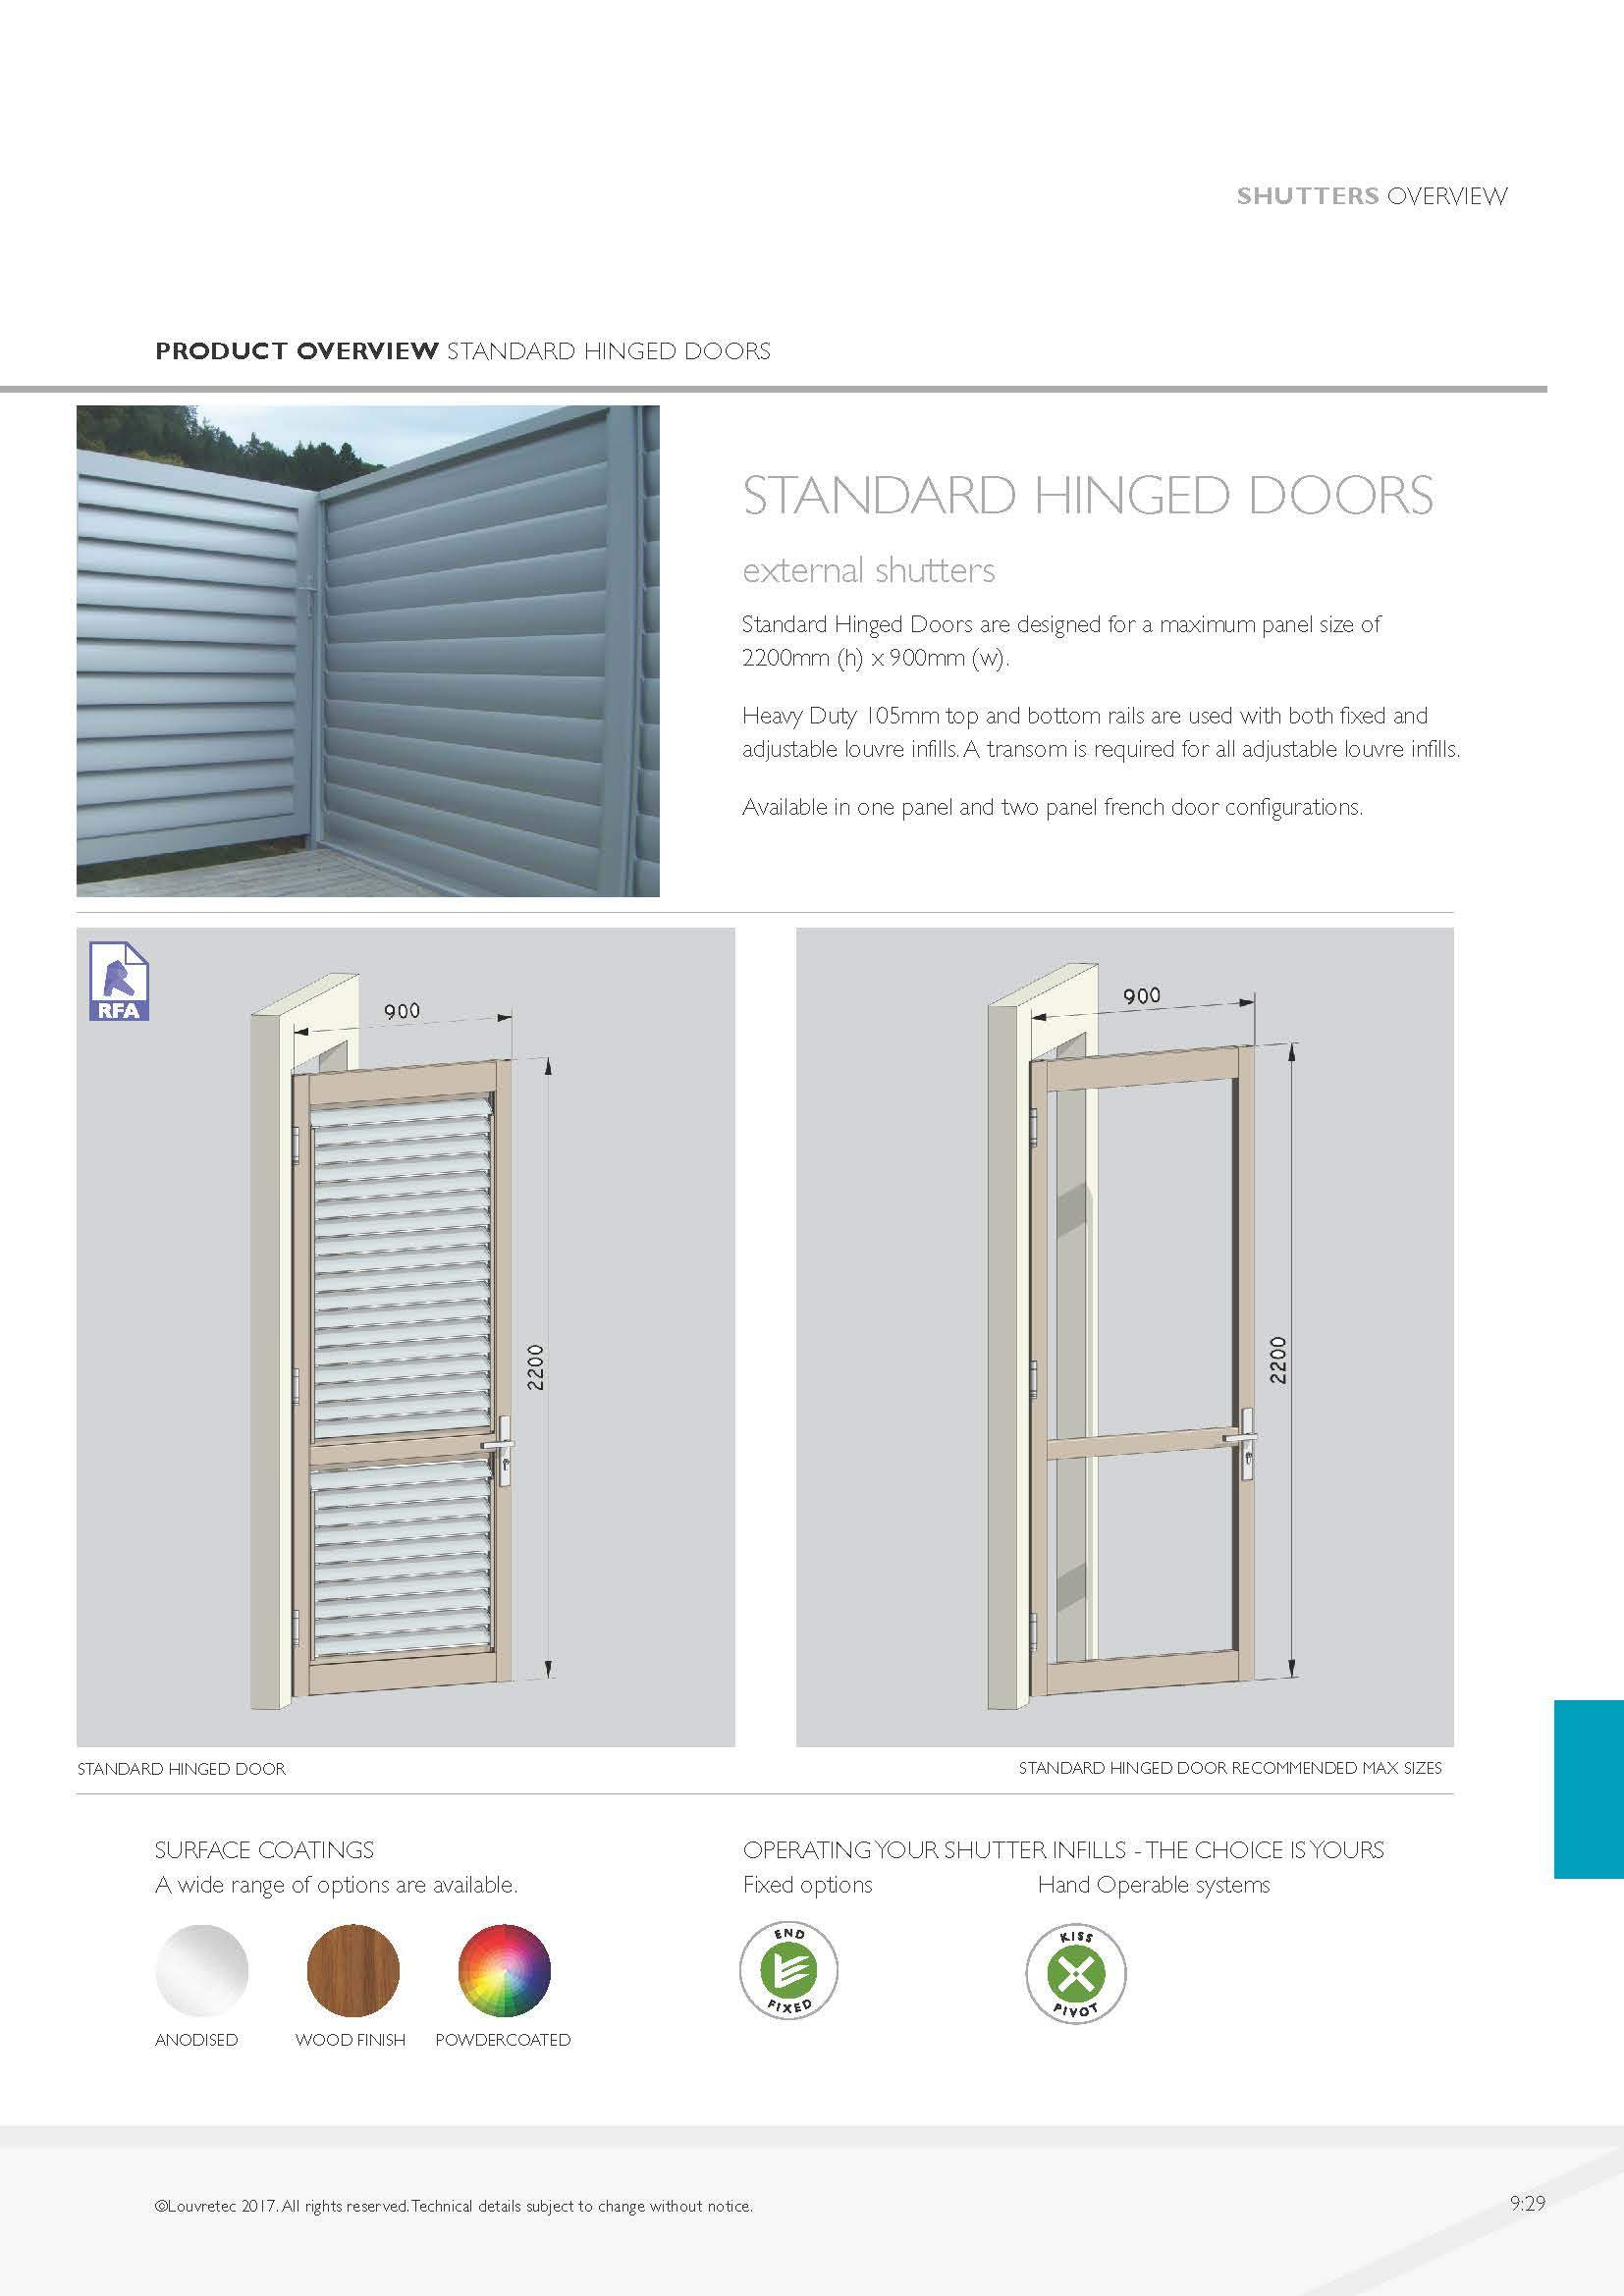 Standard Hinged Doors  9.29